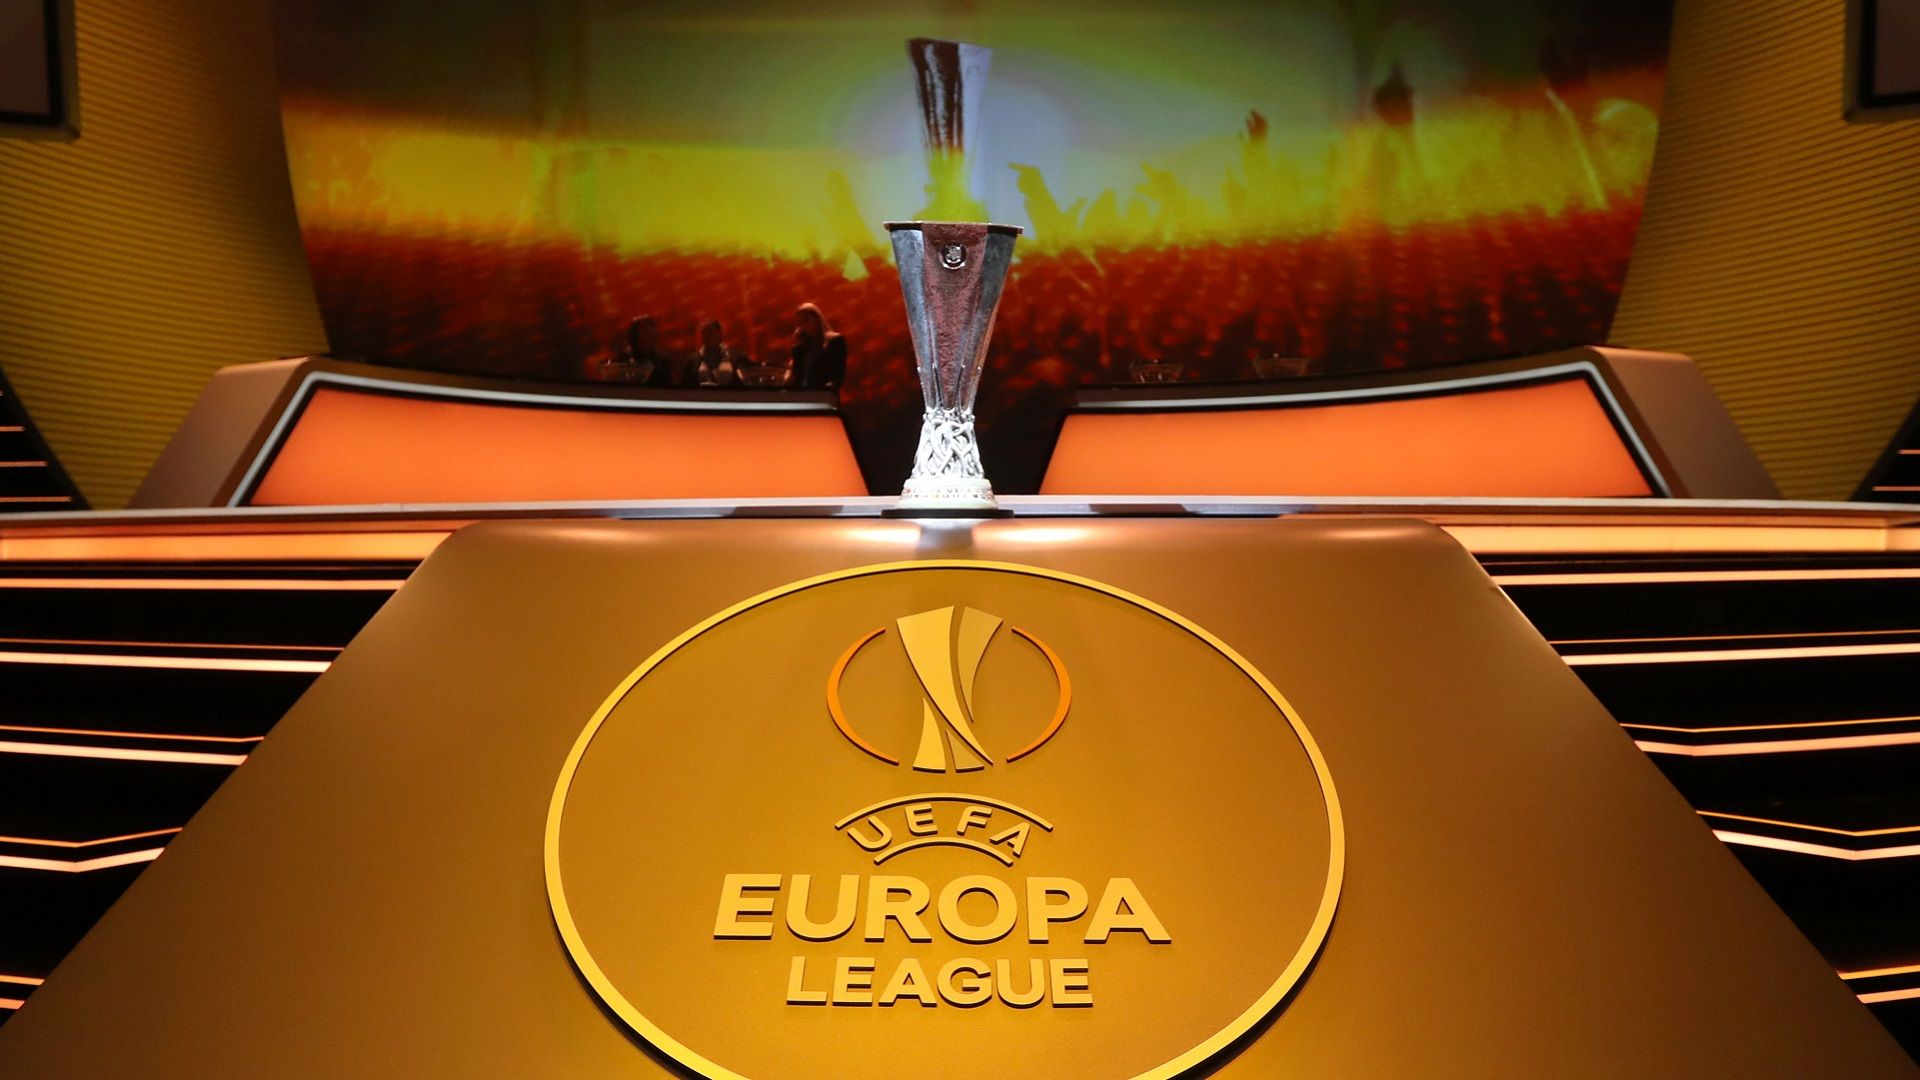 Calendario Europa League Ottavi.Sedicesimi Europa League Calendario Date E Orari Goal Com